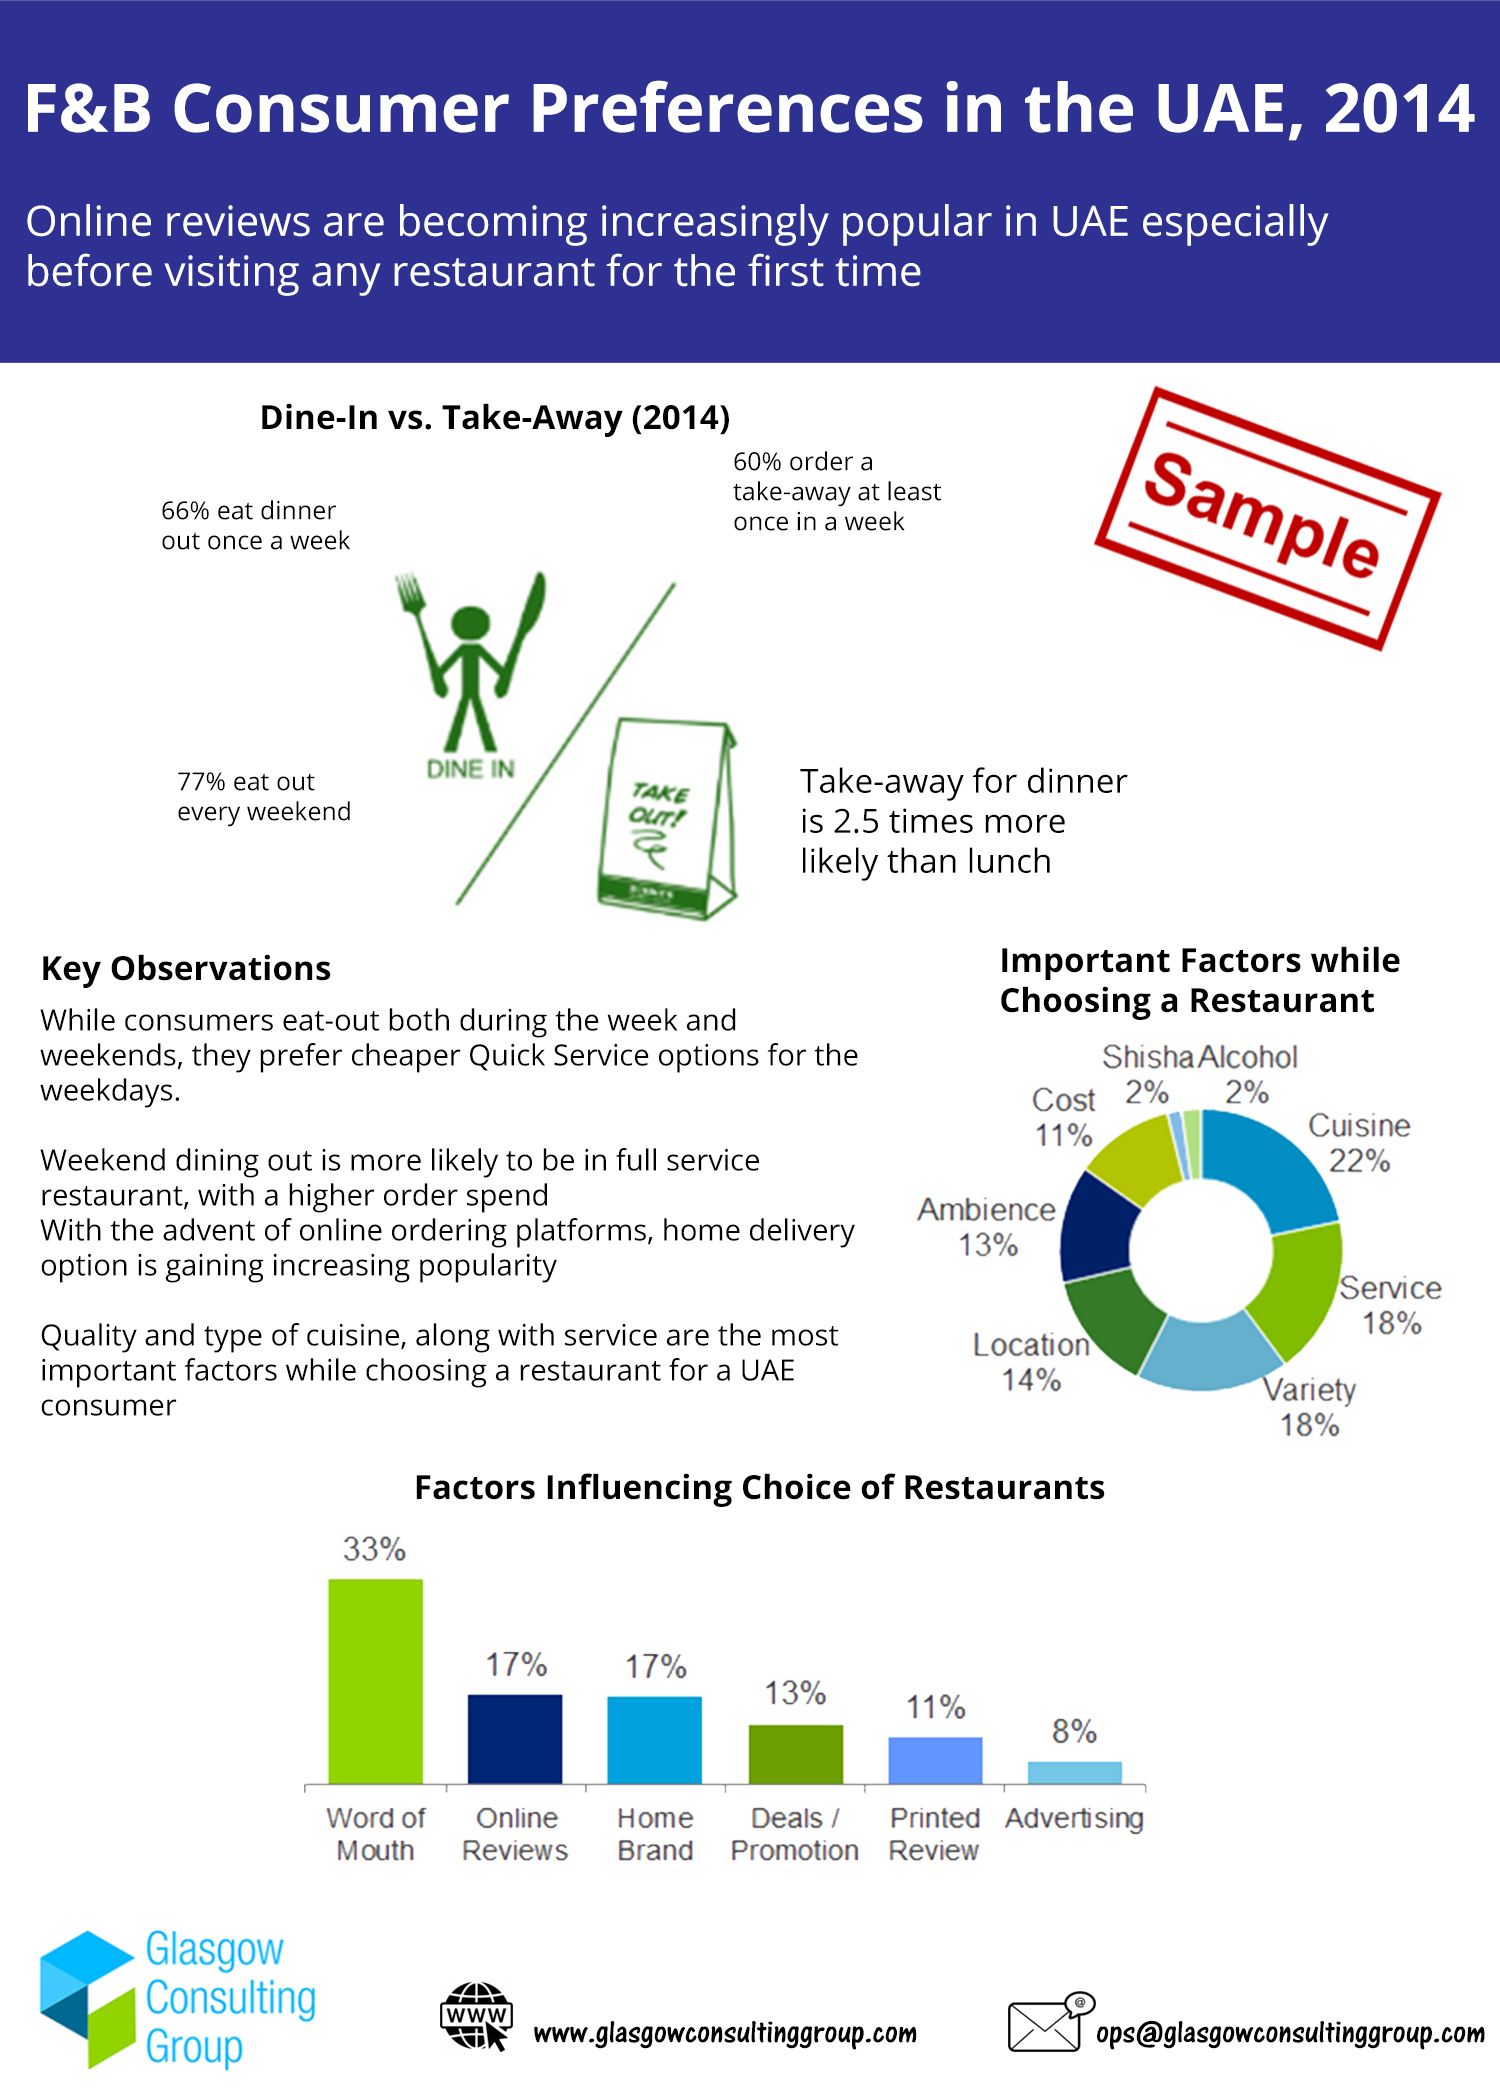 2 F&B Consumer Preferences in the UAE, 2014